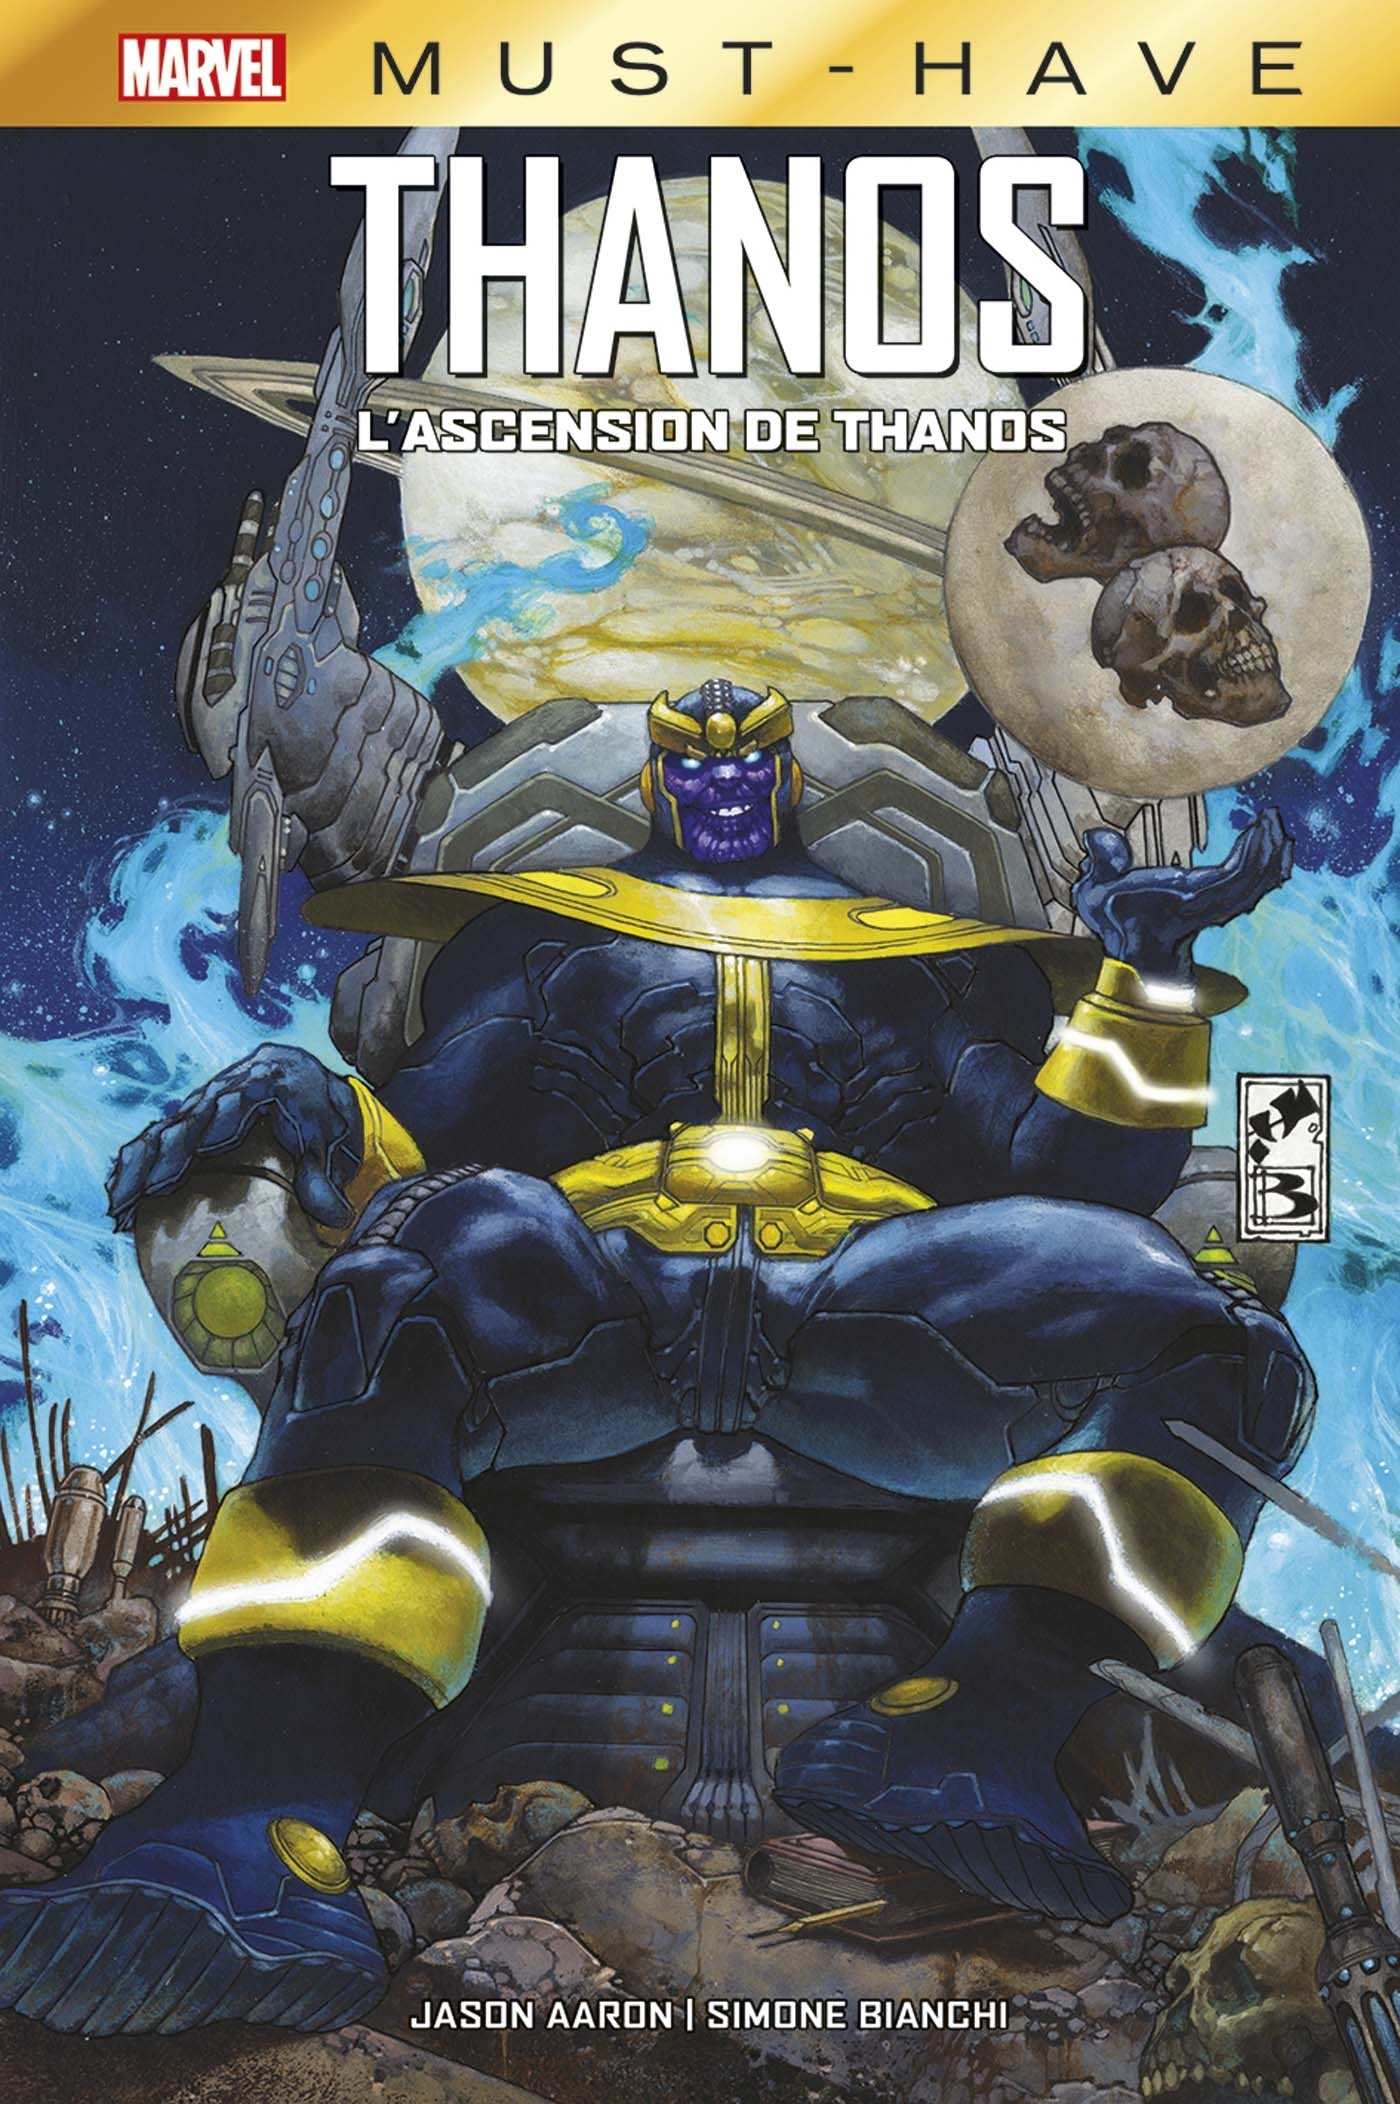 THANOS: L'ASCENSION